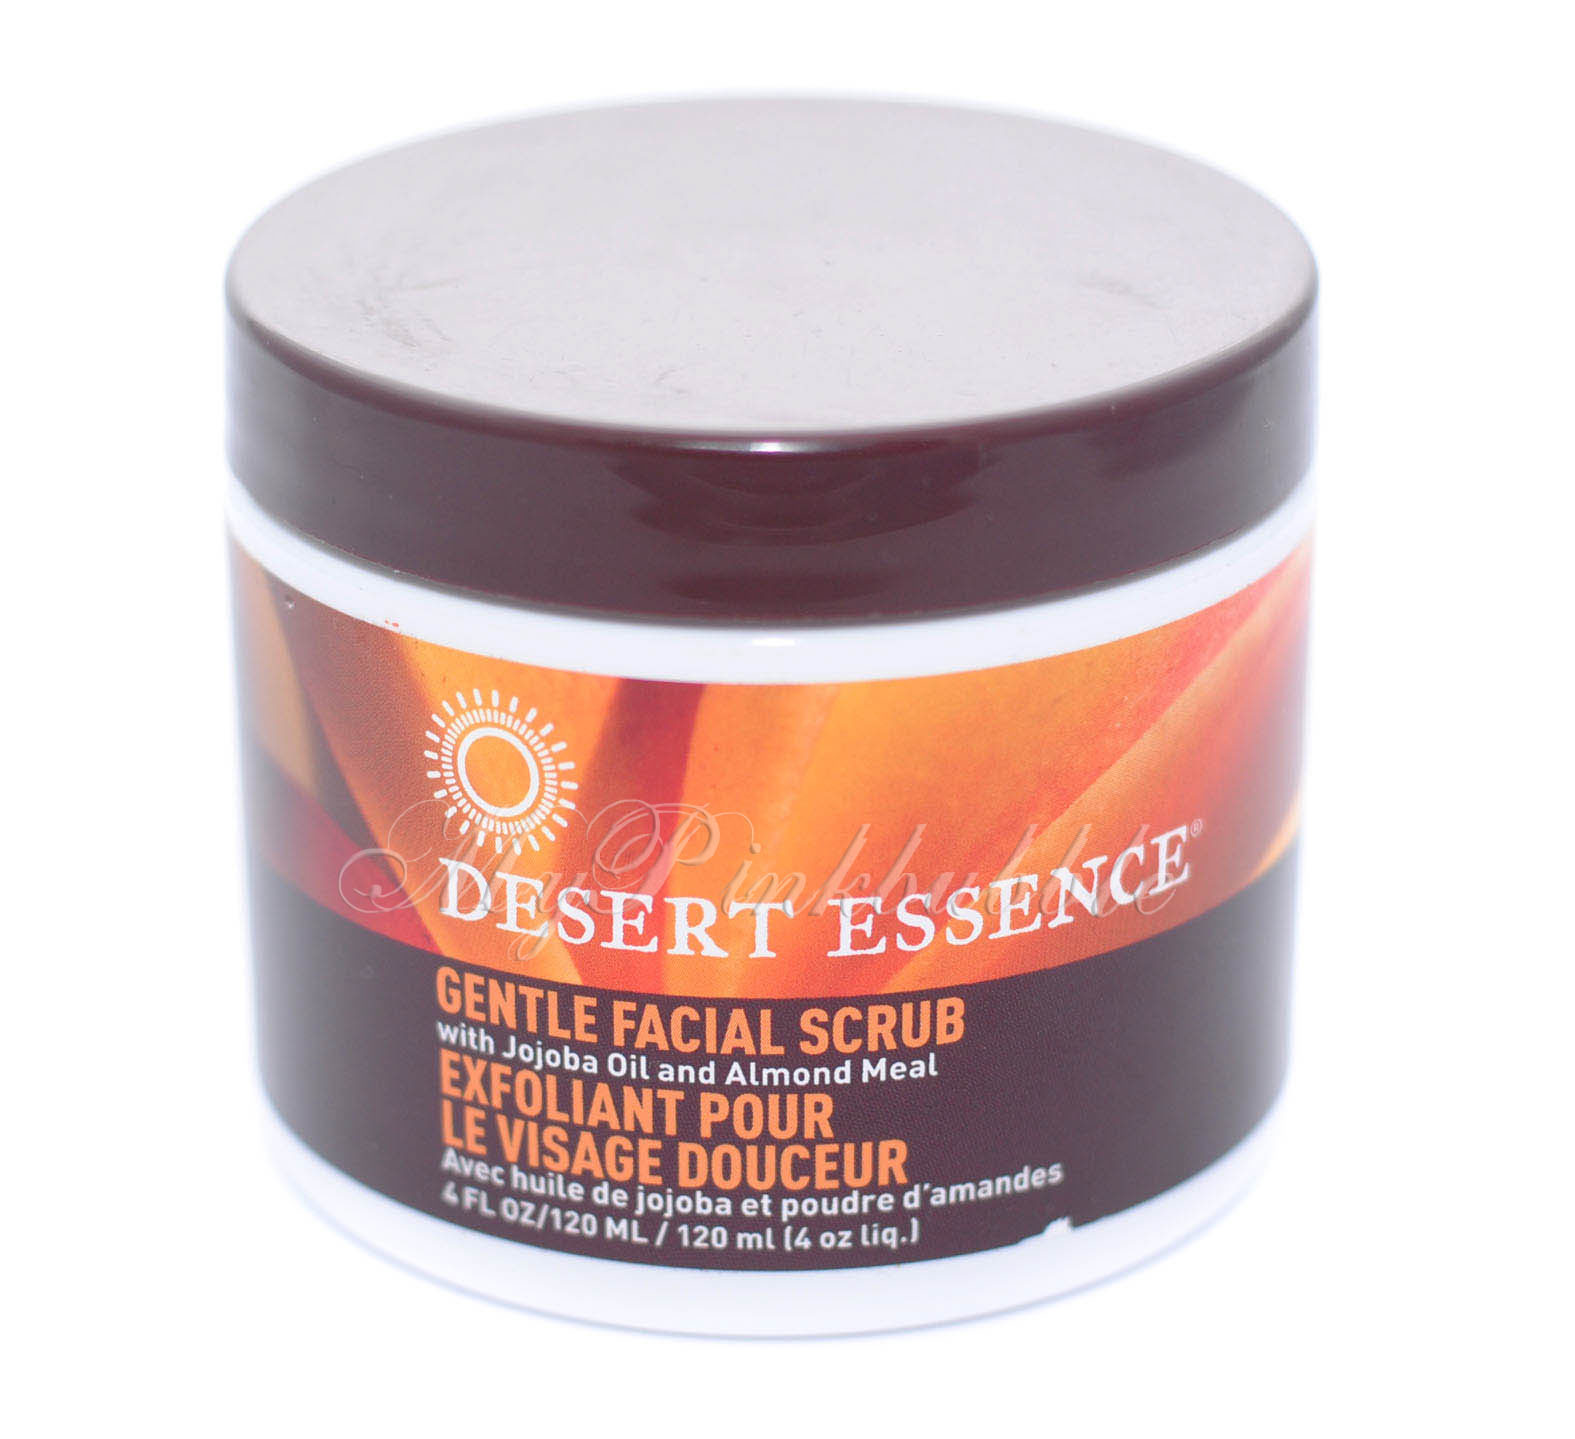 Desert essence gentle facial scrub